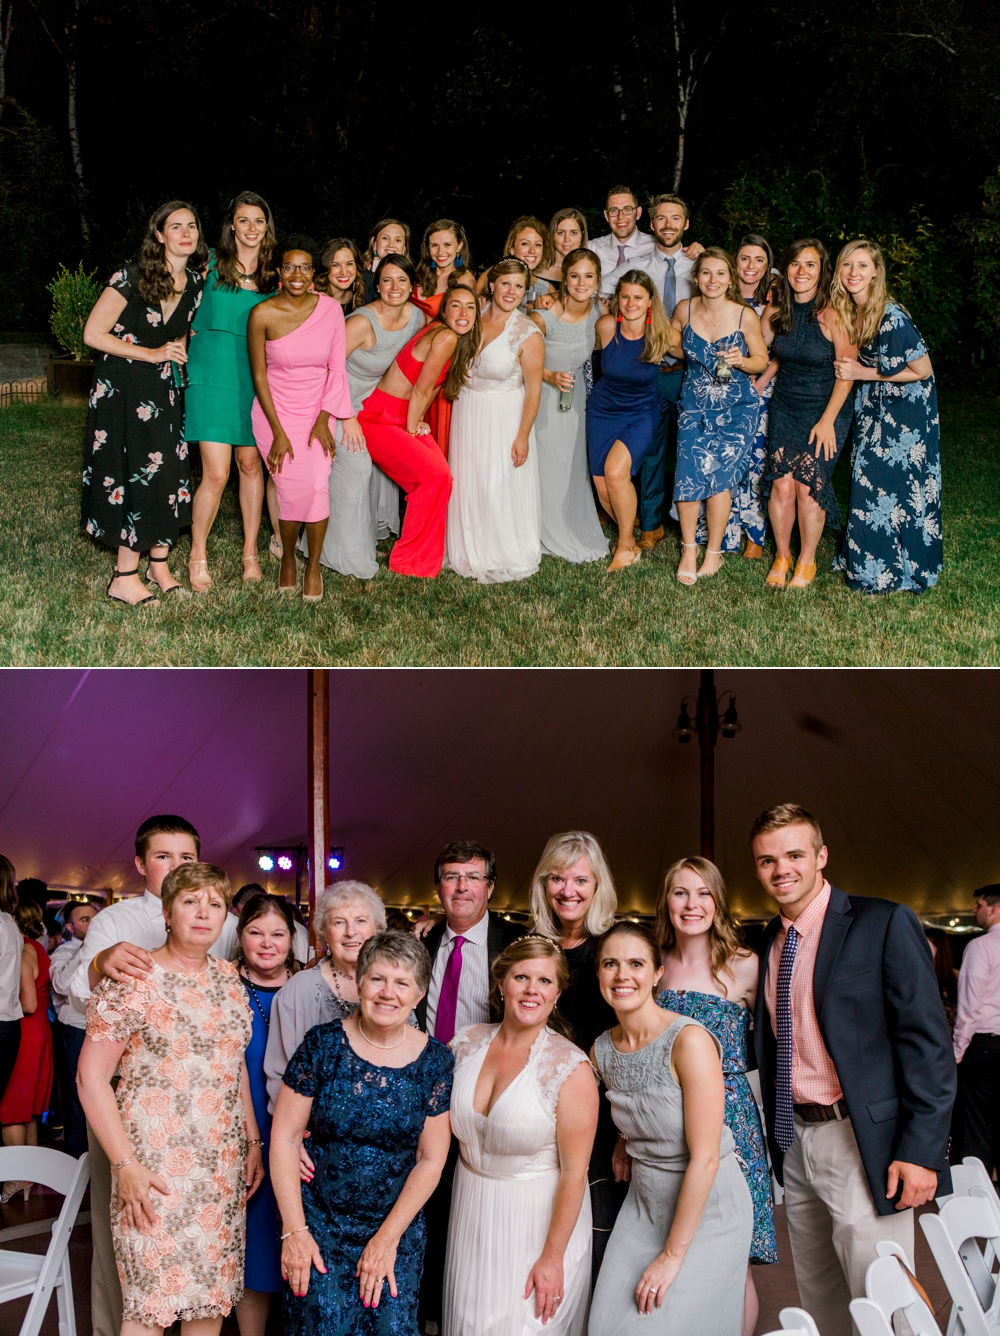 SomerbyJonesPhotography__Willowdale_WillowdaleWedding_0048.jpg